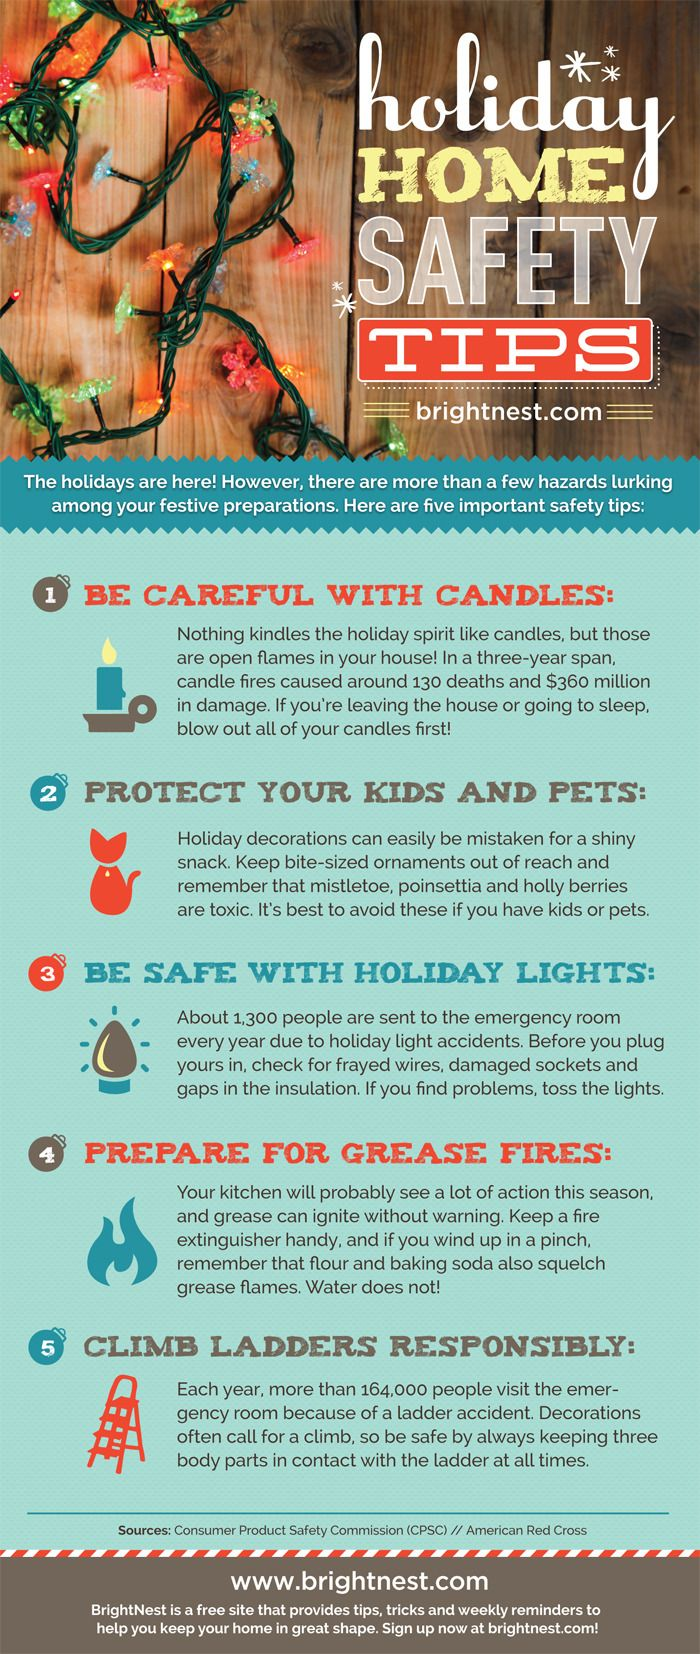 Home projects safety tips